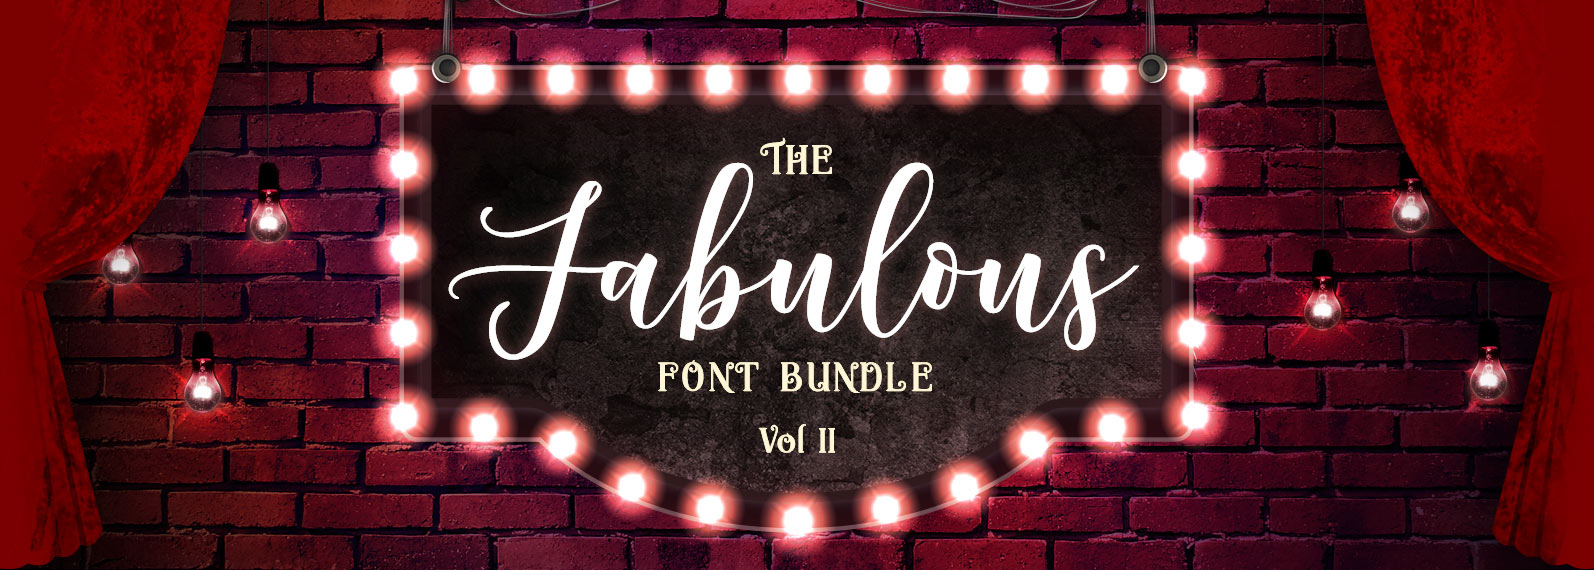 The Fabulous Font Bundle Volume II Cover